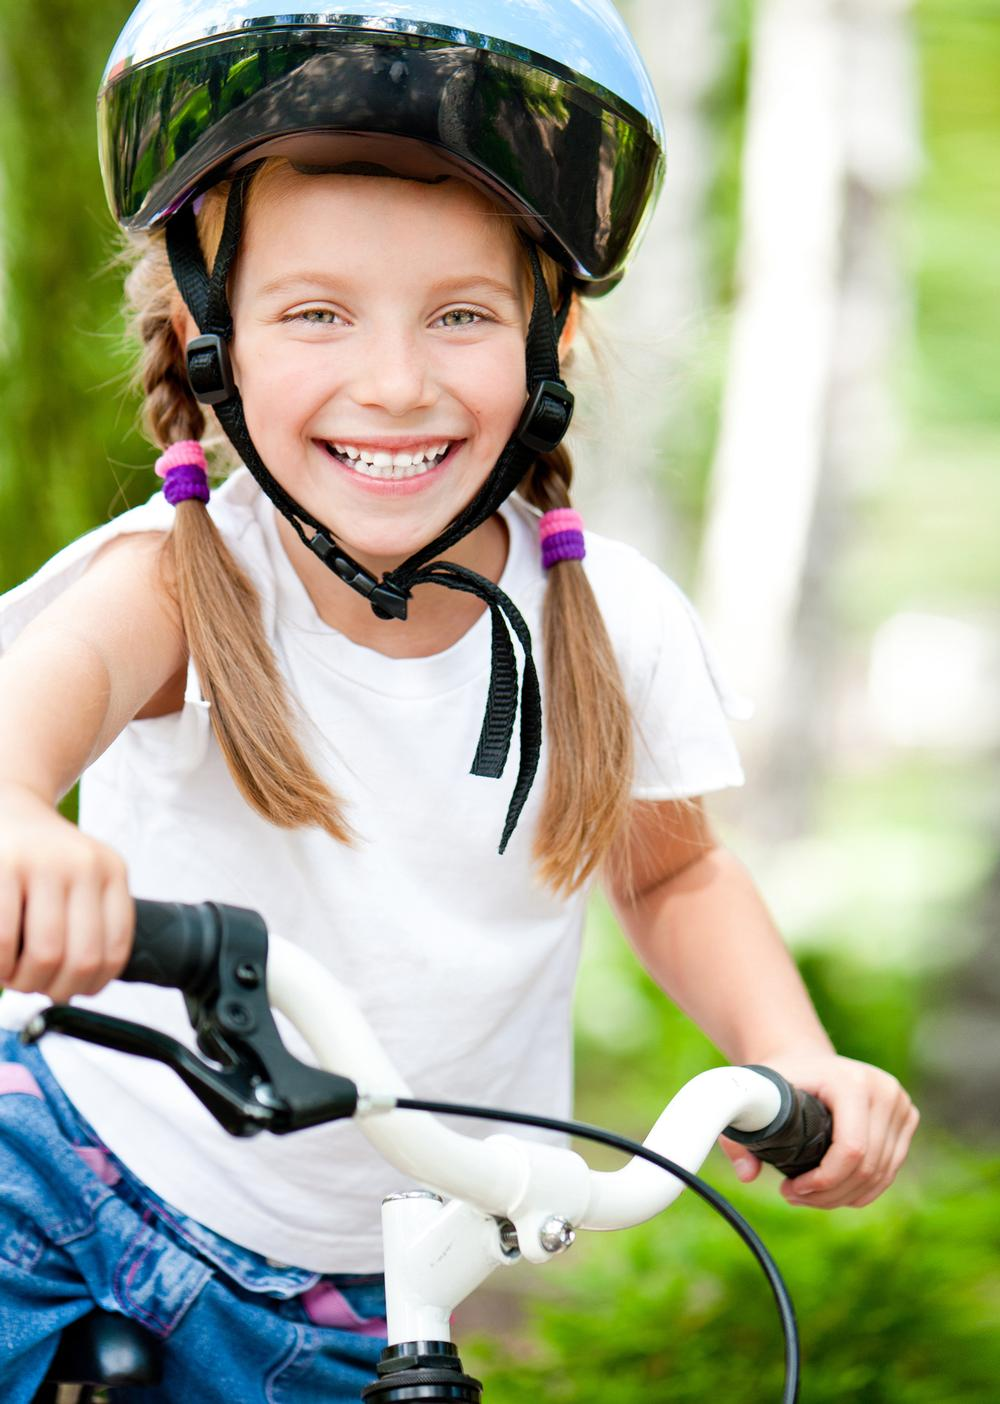 The London 2012 Olympic Games have resulted in a boost in bicycle sales for all ages / Photo: shutterstock